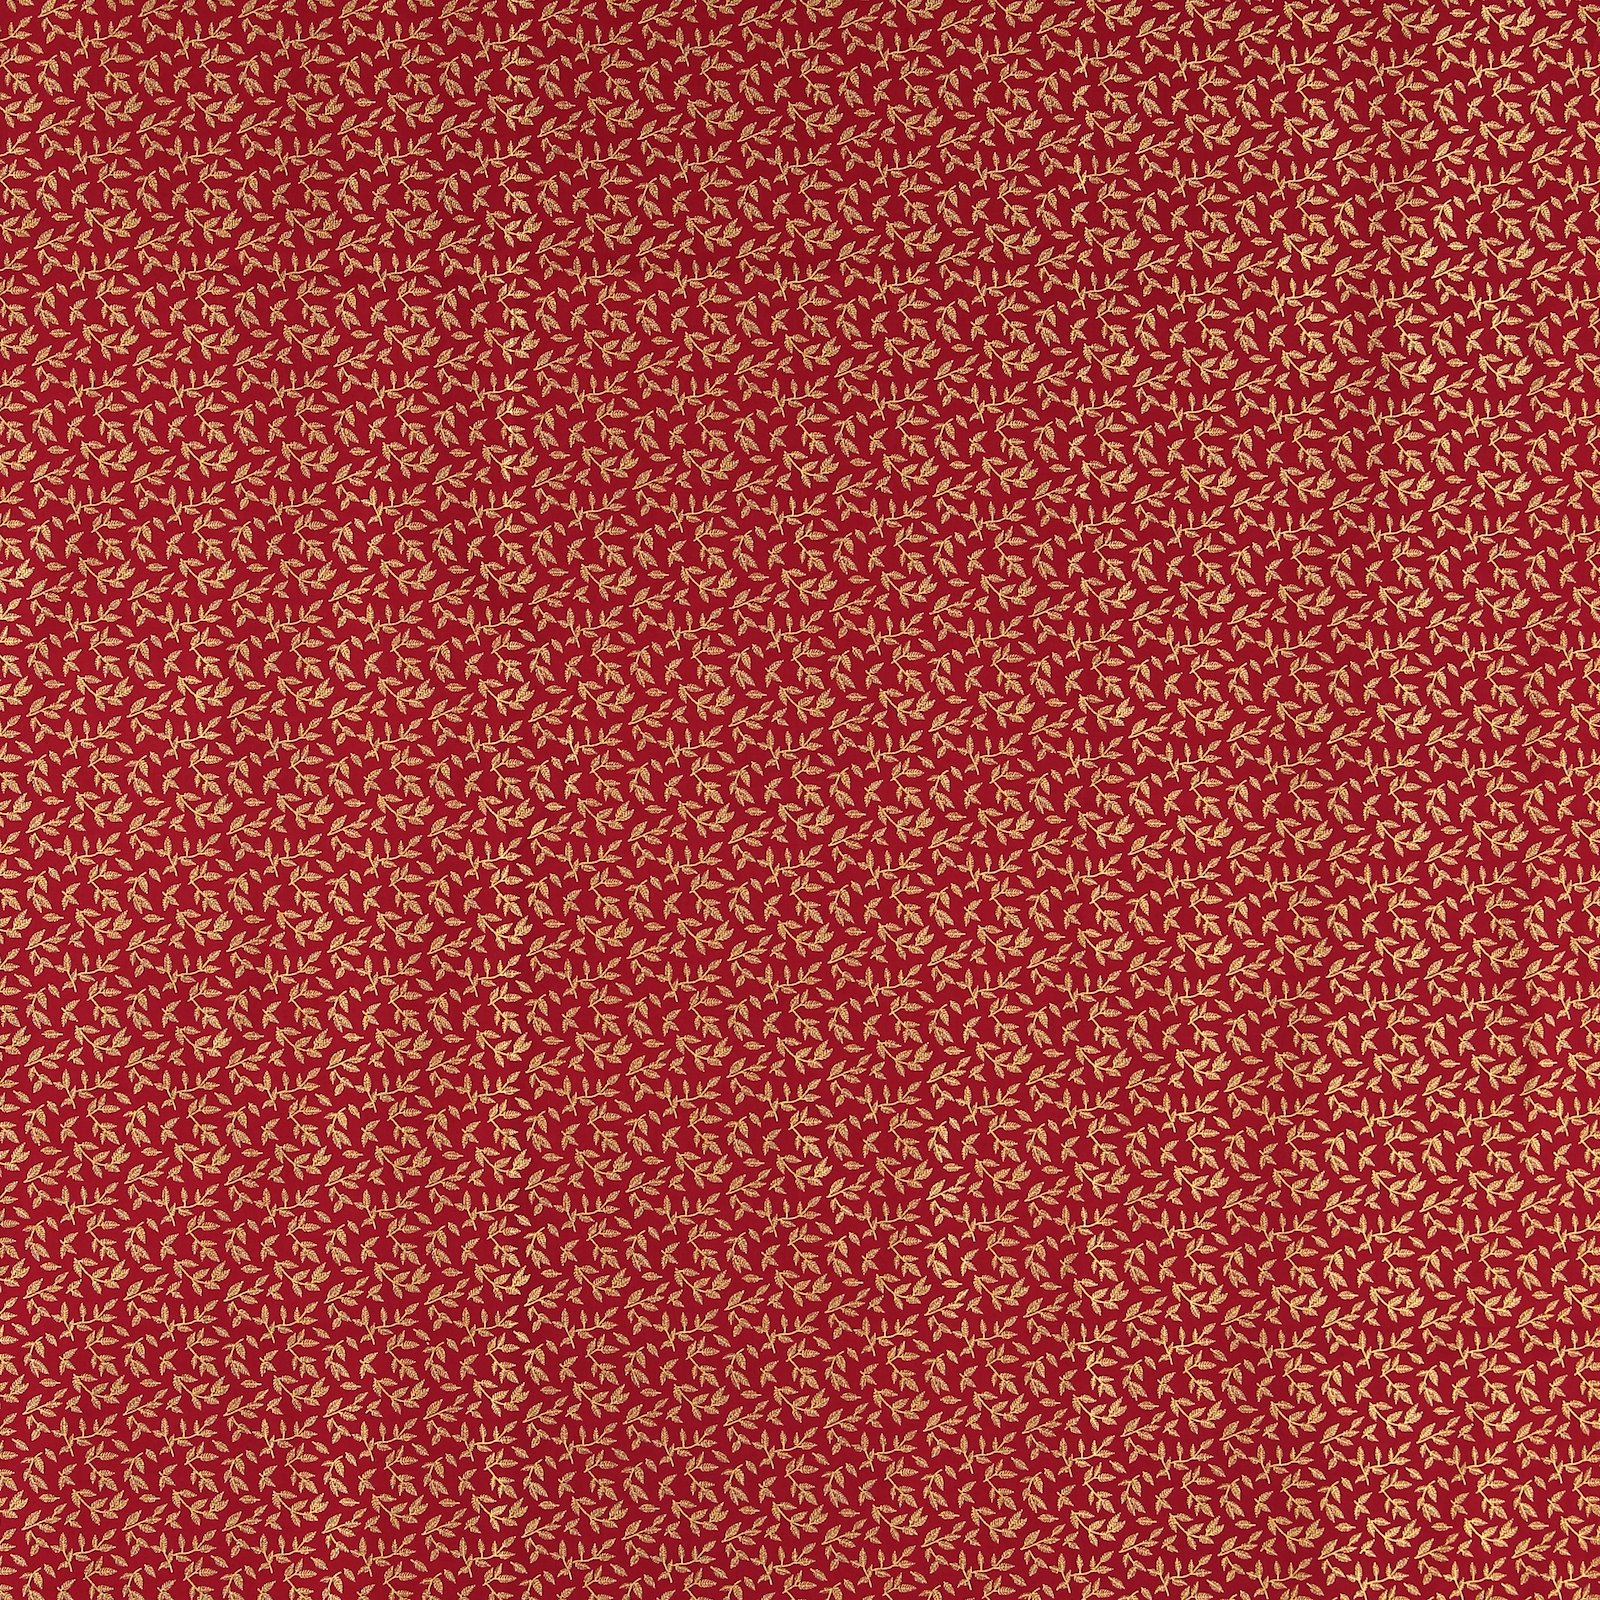 Patchwork 45x55cm red with gold leaves 92406_pack_sp